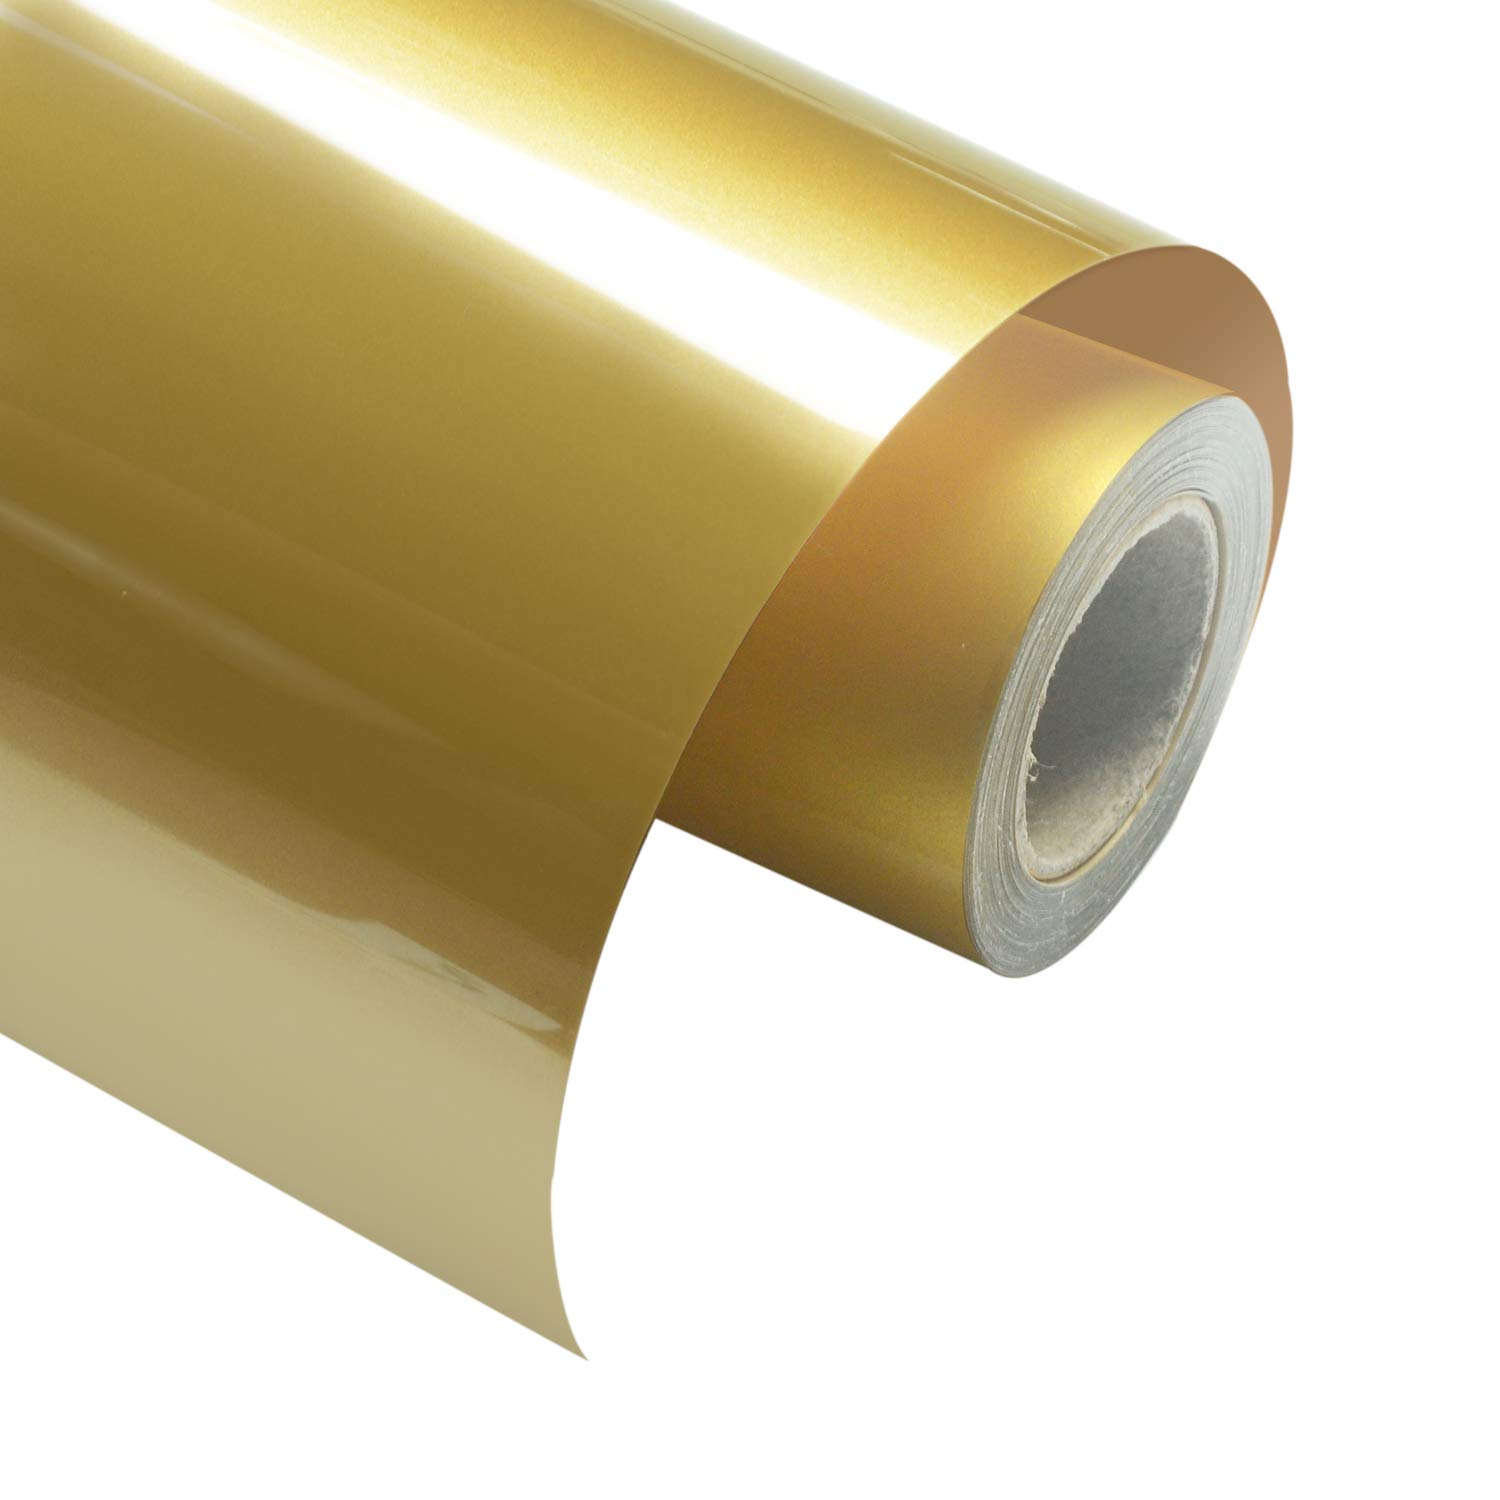 """PU Heat Transfer Vinyl Gold HTV 10"""" x12FT Iron on Vinyl Roll for T-Shirts, Hats, Clothing Compatible with Silhouette Cameo and Cricut"""